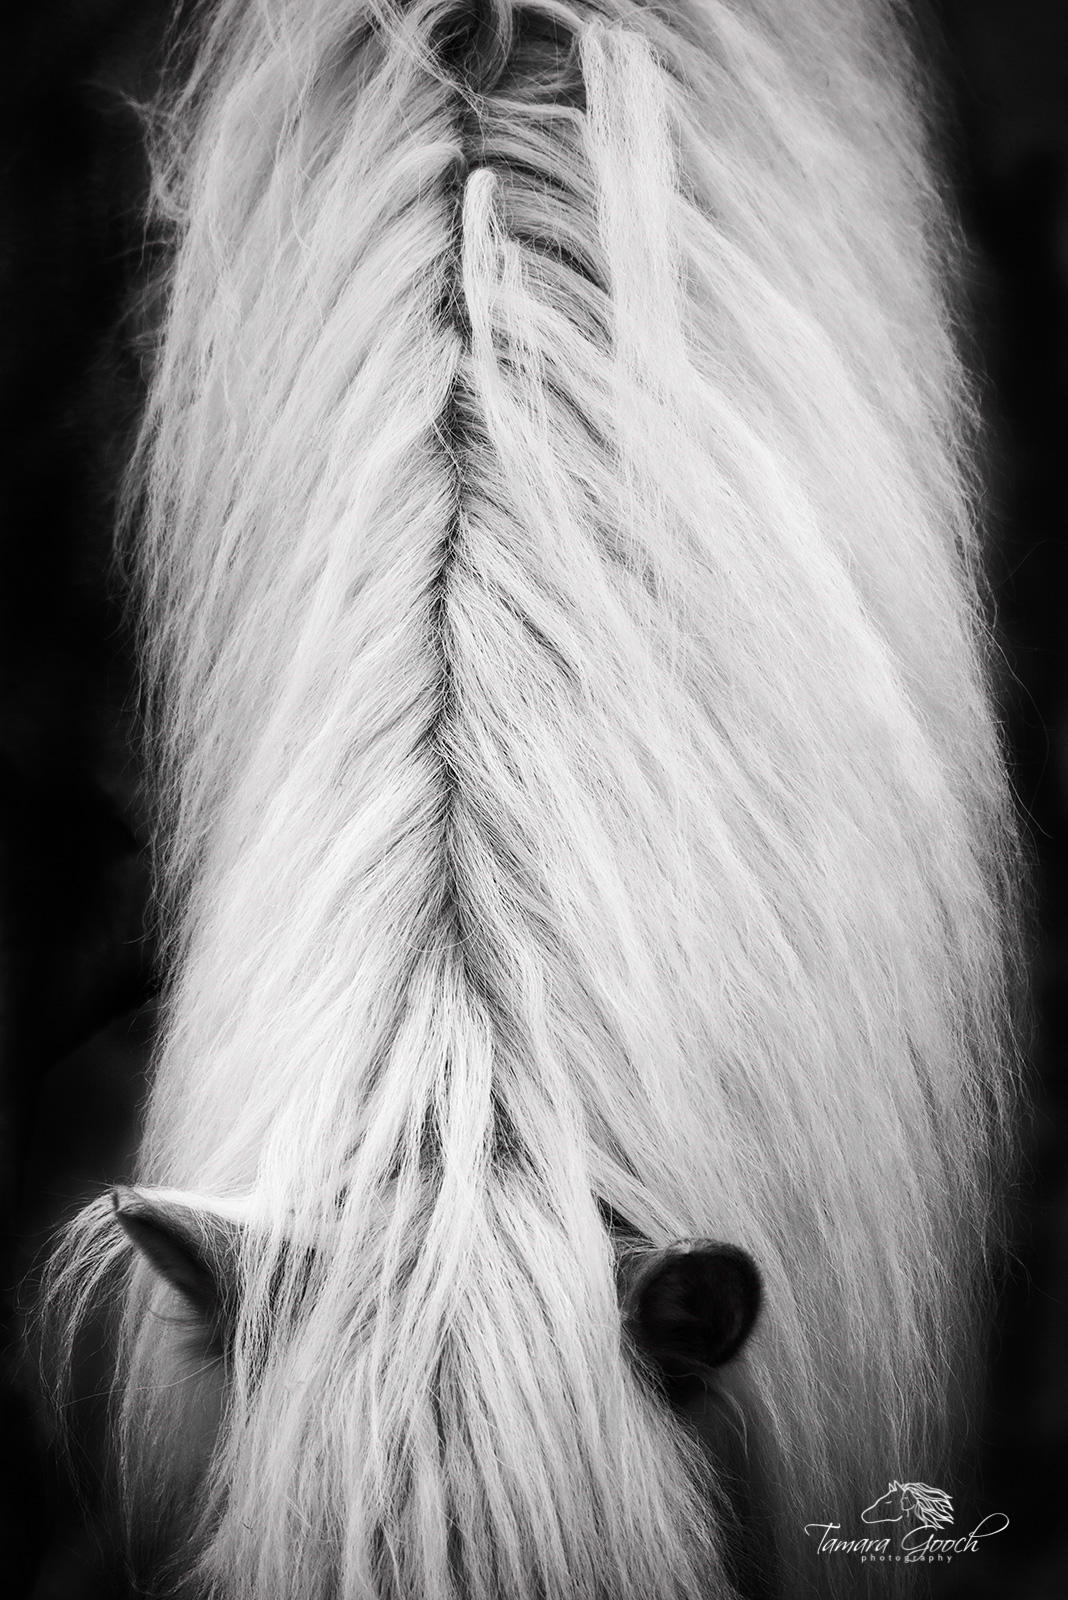 A fine art photograph of a horses mane and forelock in black and white.